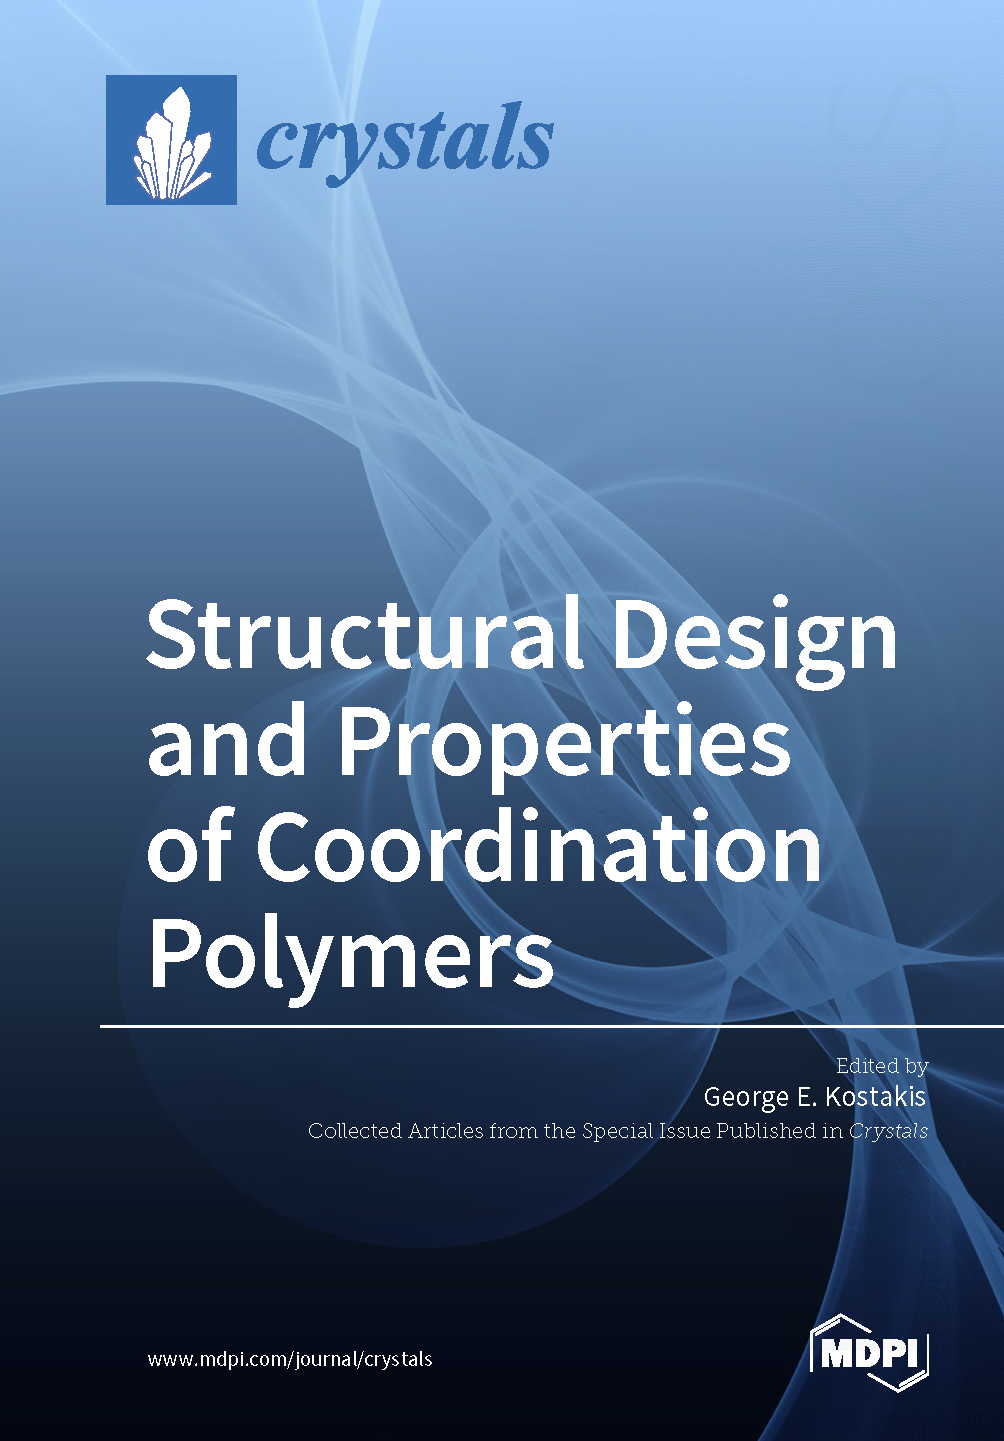 Structural Design and Properties of Coordination Polymers